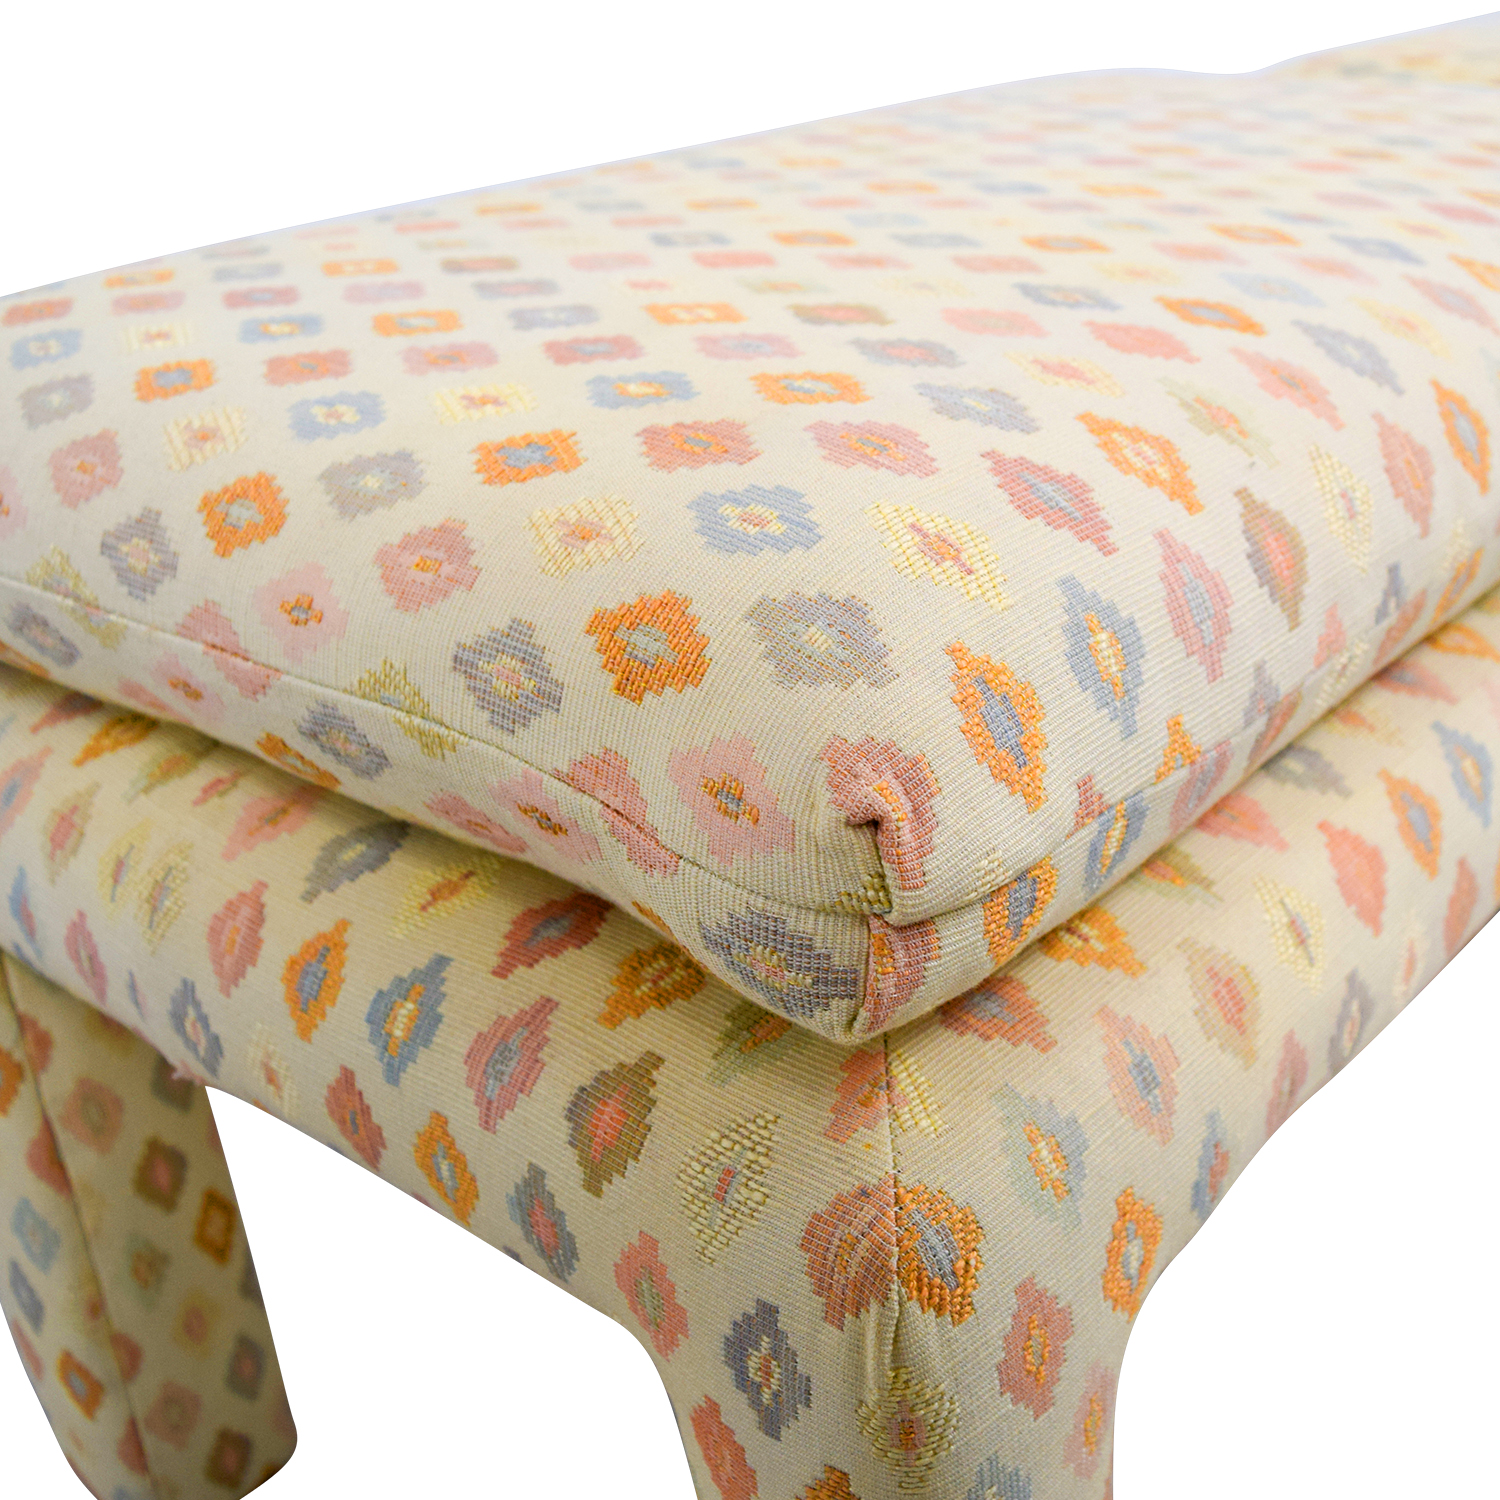 buy Beige Multi-Colored Upholstered Footstools Chairs